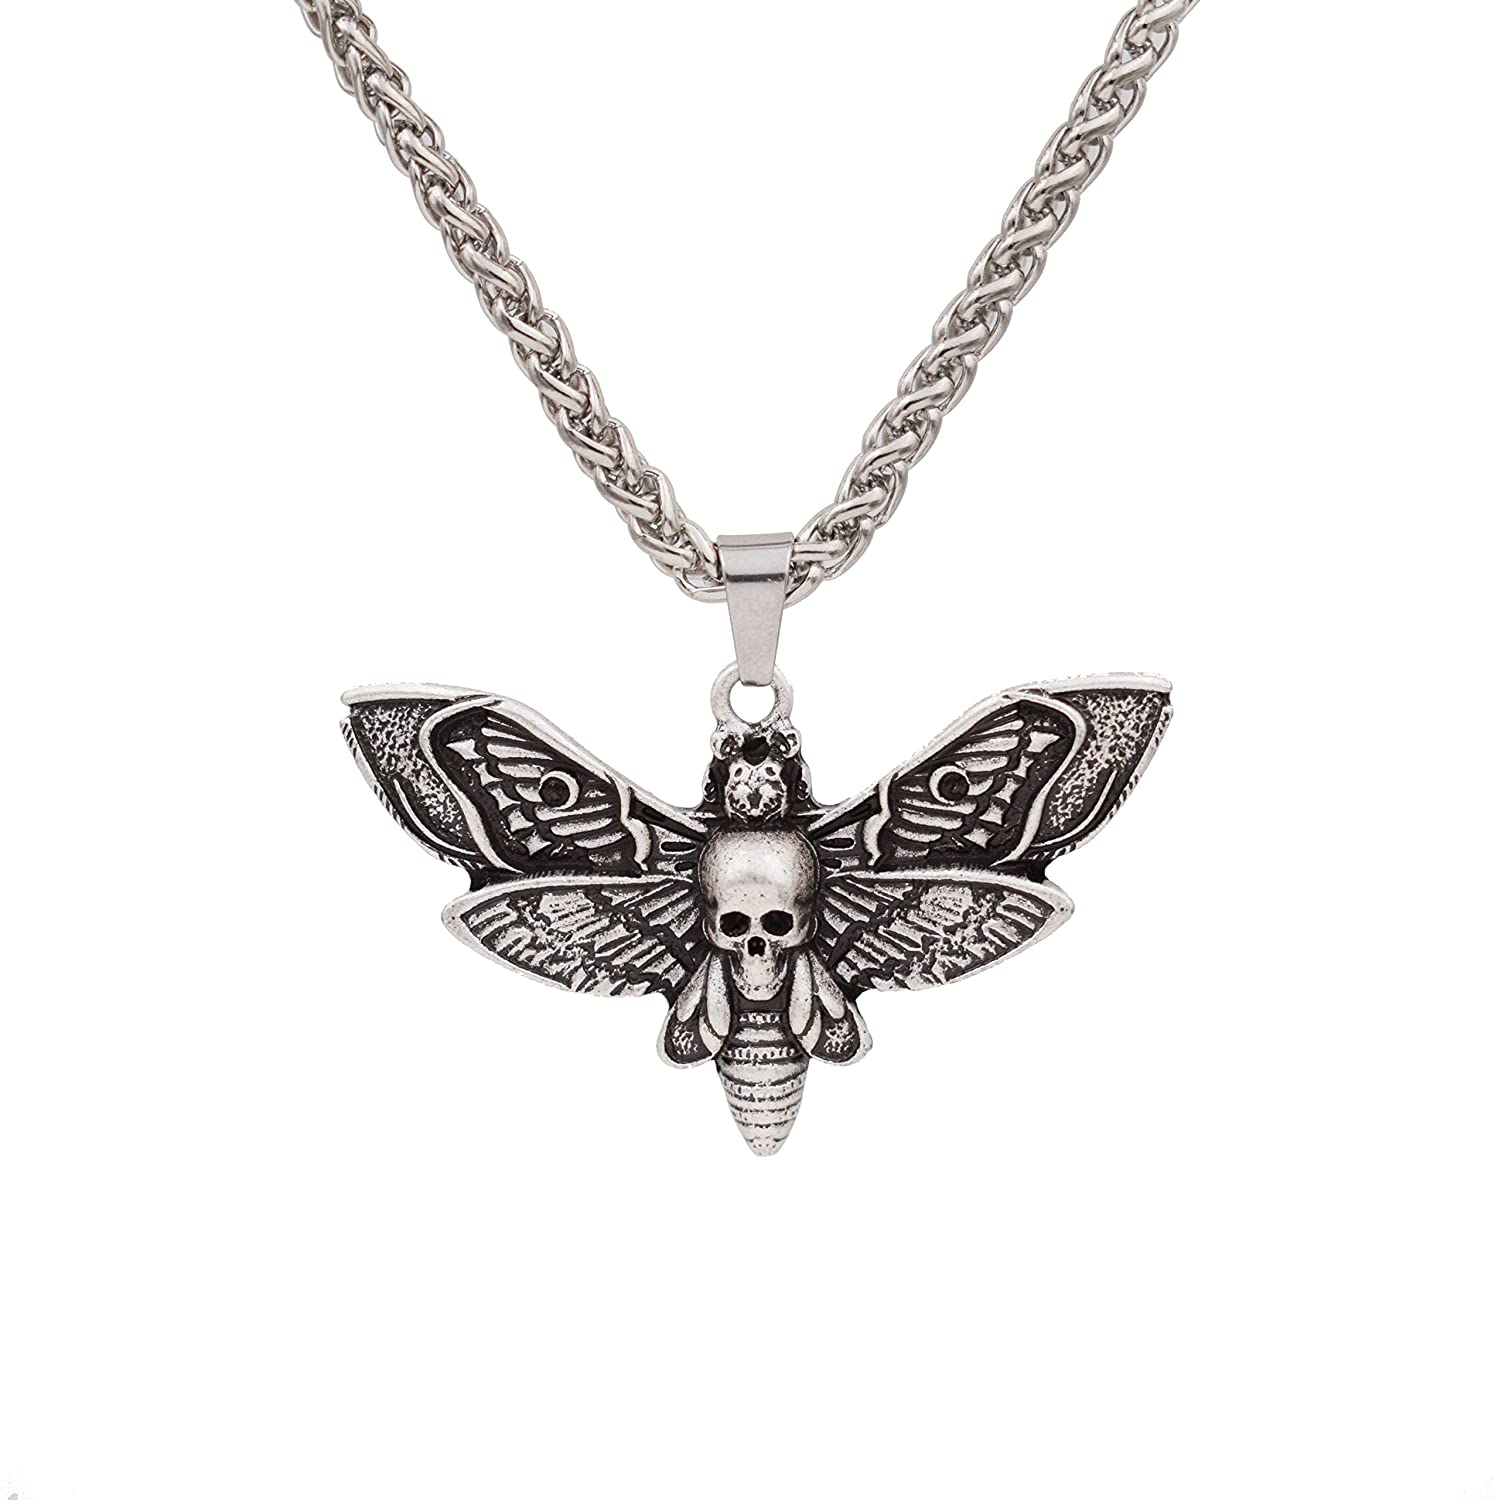 SanLan Death Head Moth Pendant Necklace Wicca Jewelry Goth Moth and The Moon